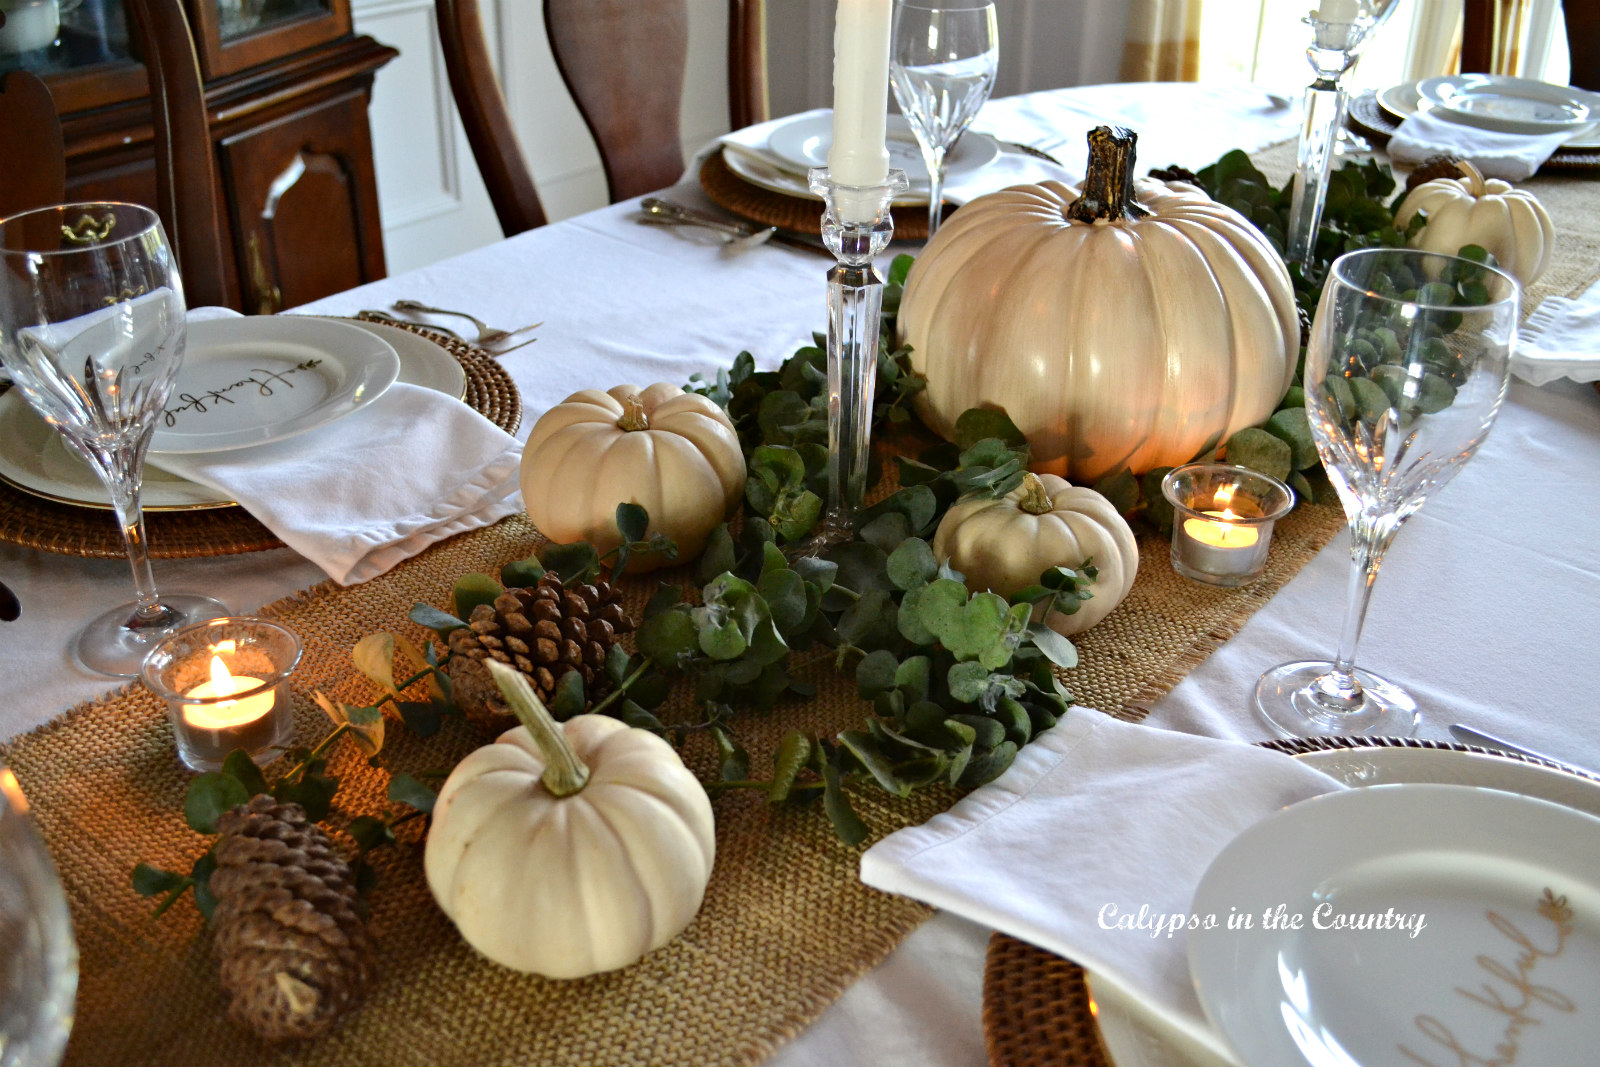 Thanksgiving Table mixing casual and formal pieces